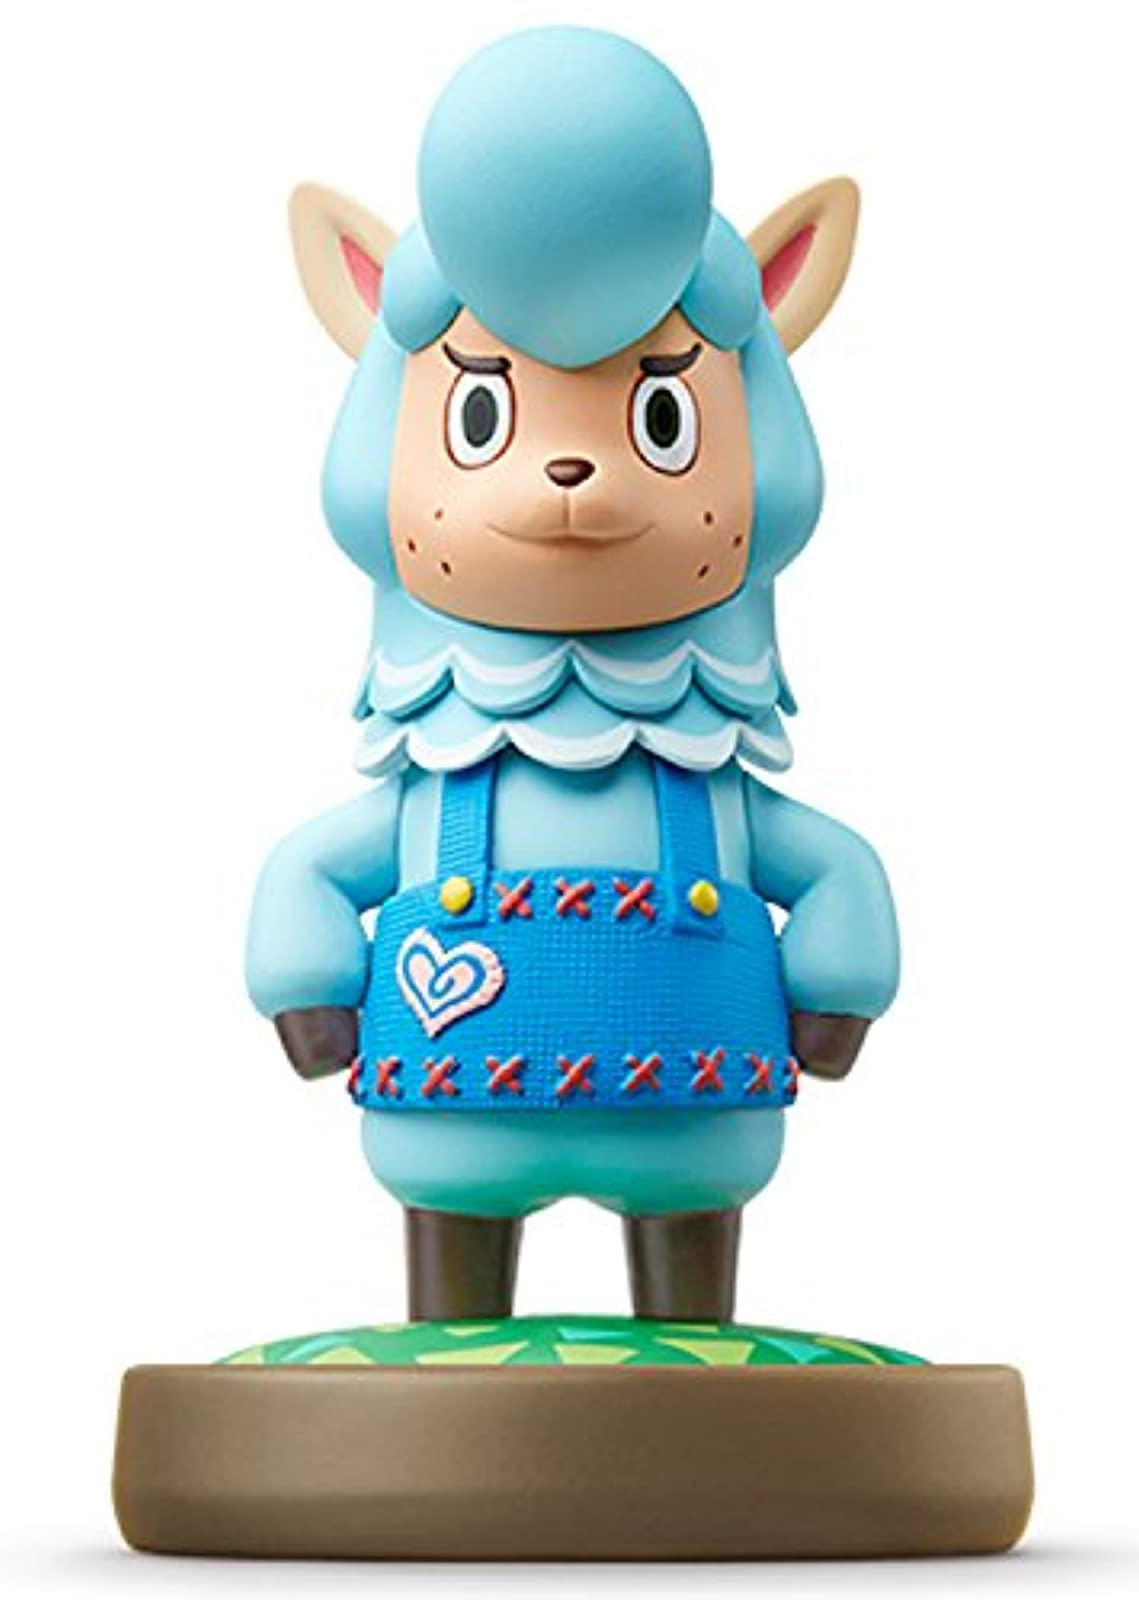 Amiibo Kaizo Animal Crossing Series Figure Character